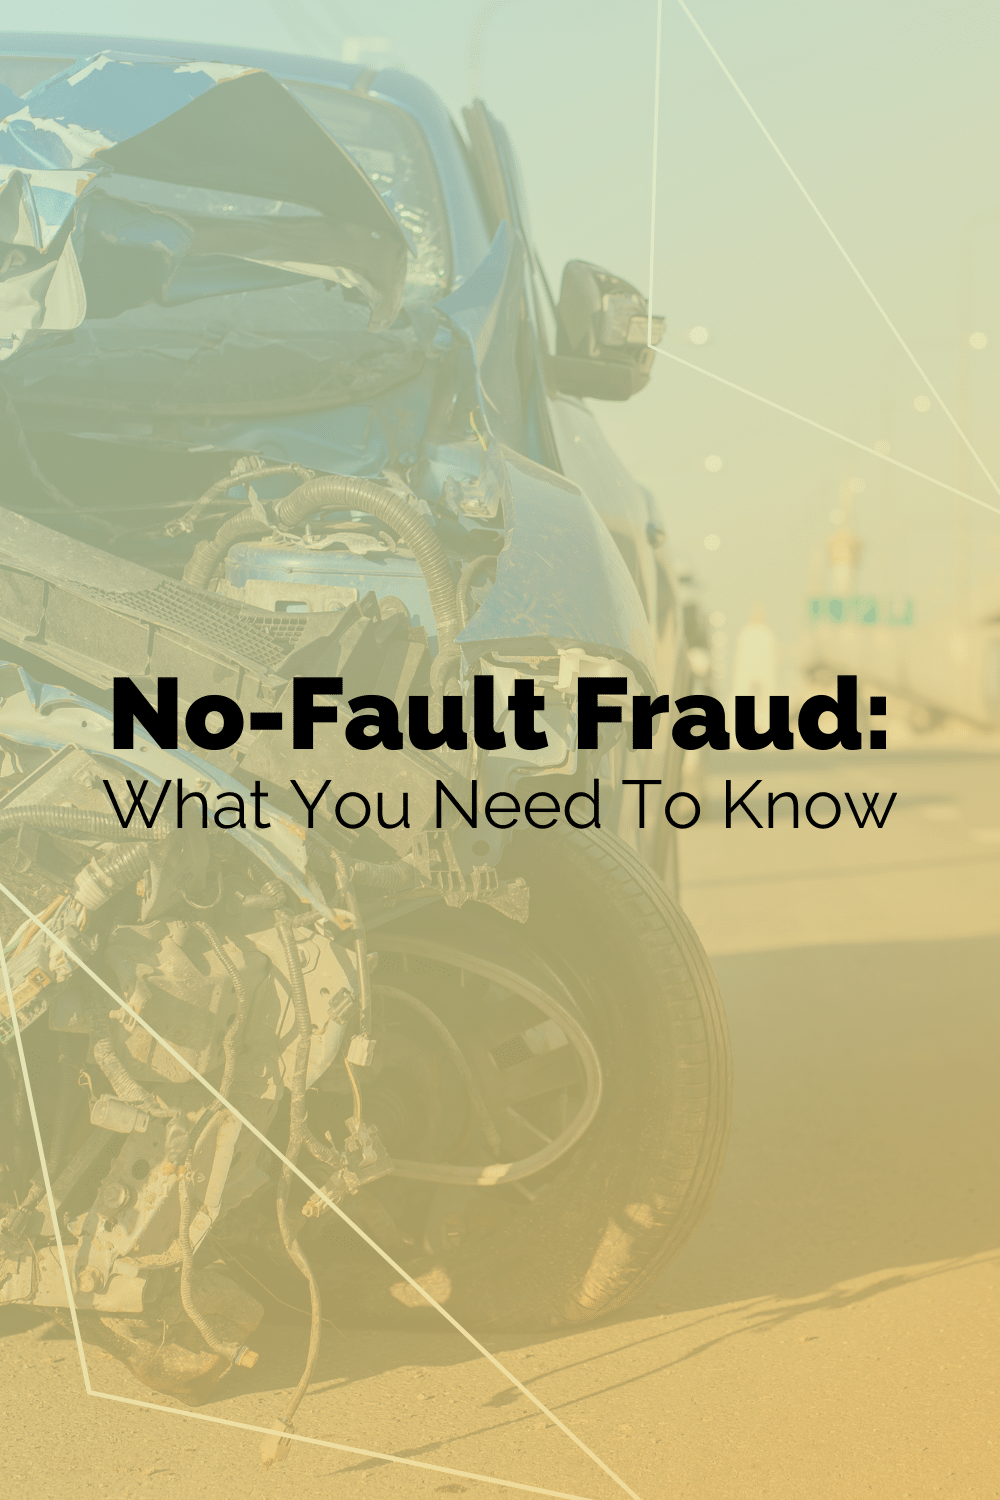 No-Fault Fraud: What You Need To Know